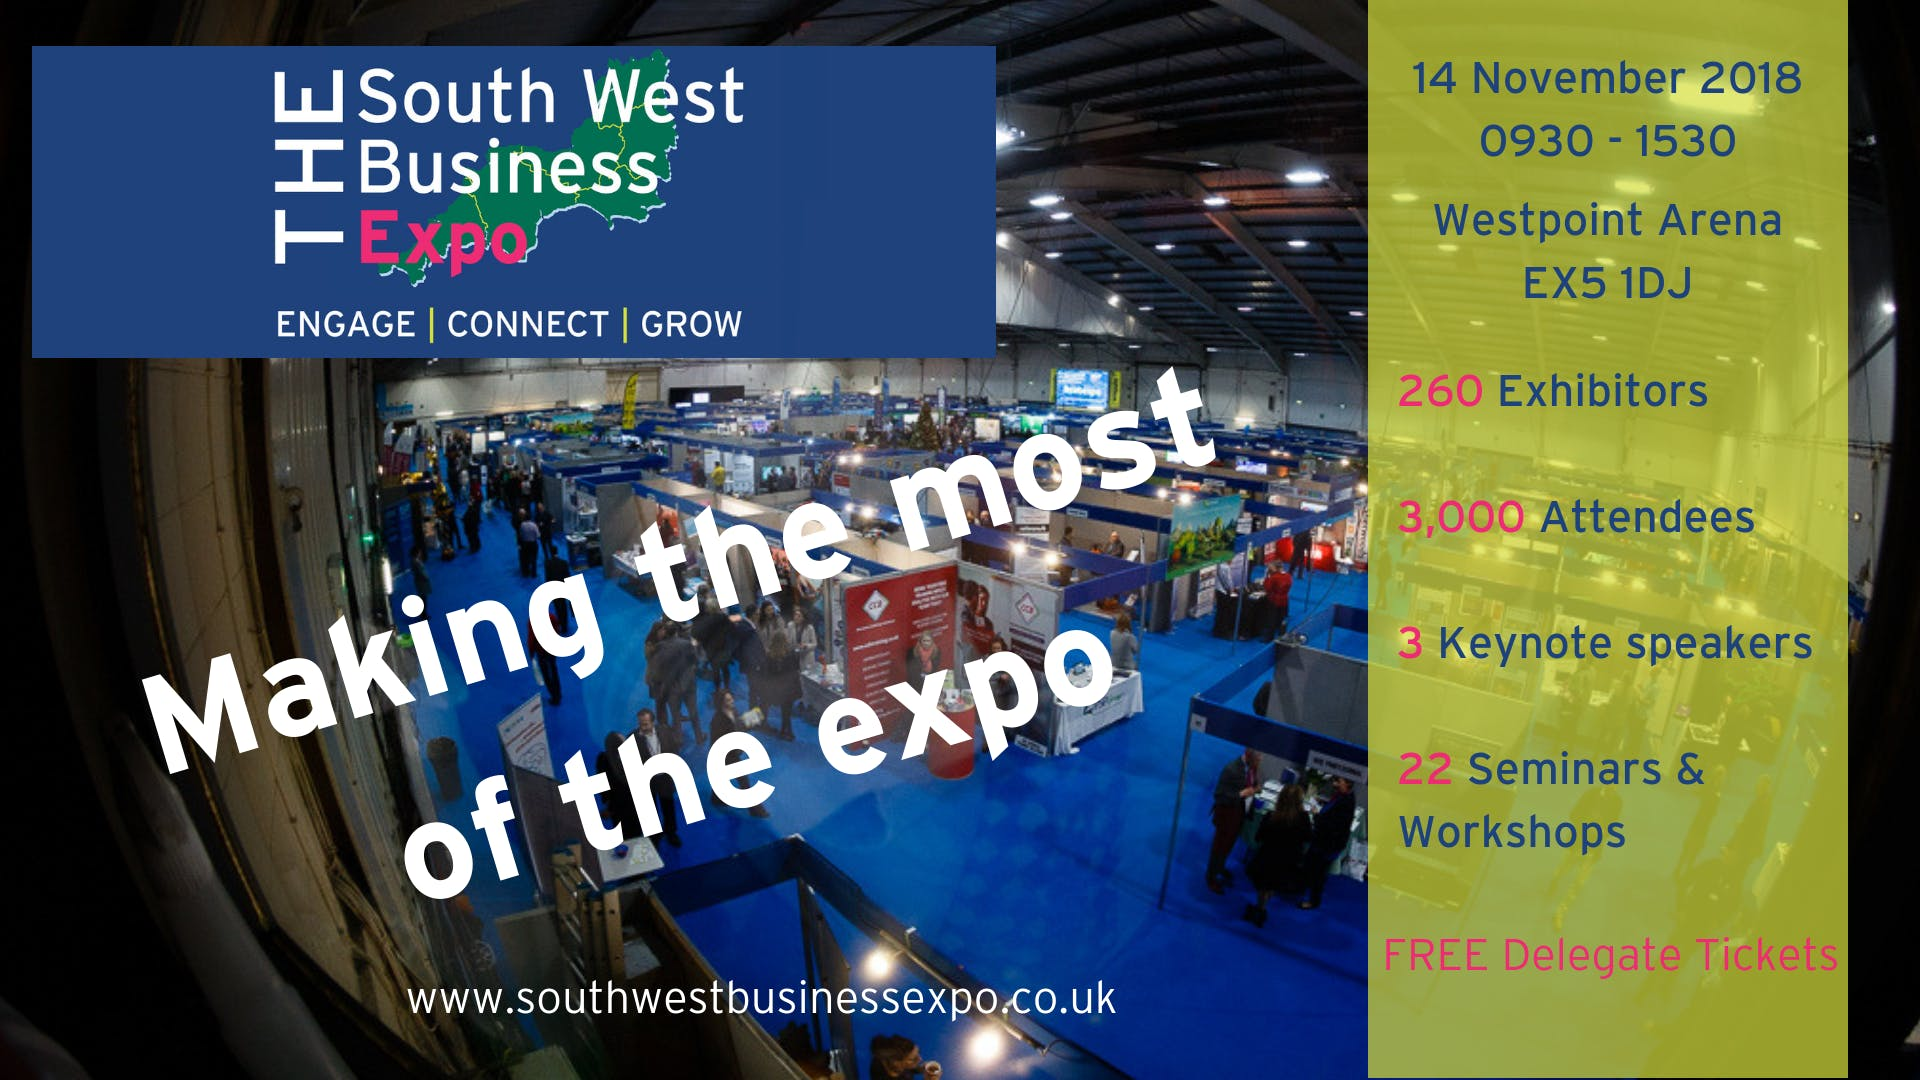 Making the most of the SWB Expo